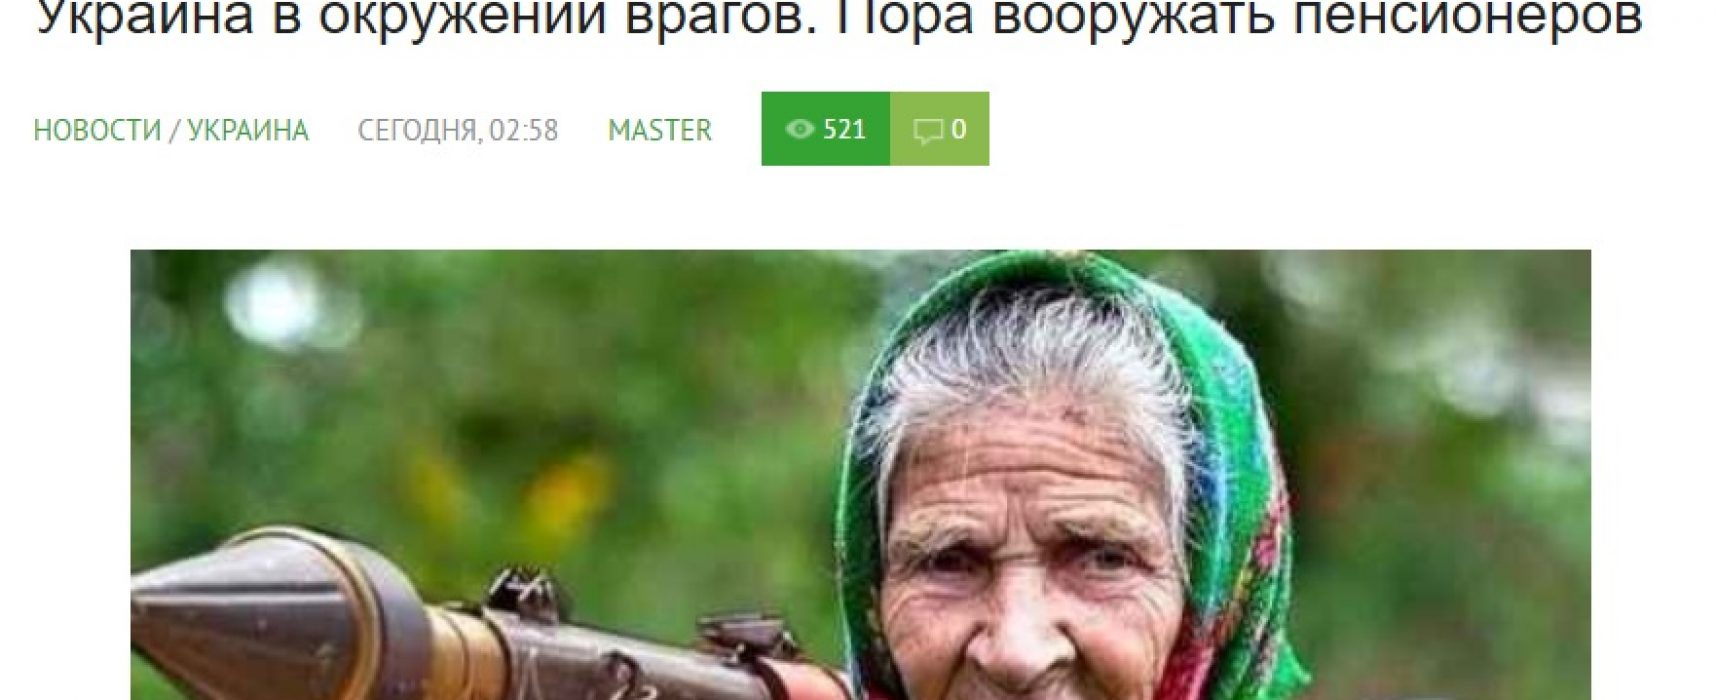 Distortion: Ukrainian Grandmothers to be Armed with Machine Guns to Defend Themselves against Russia